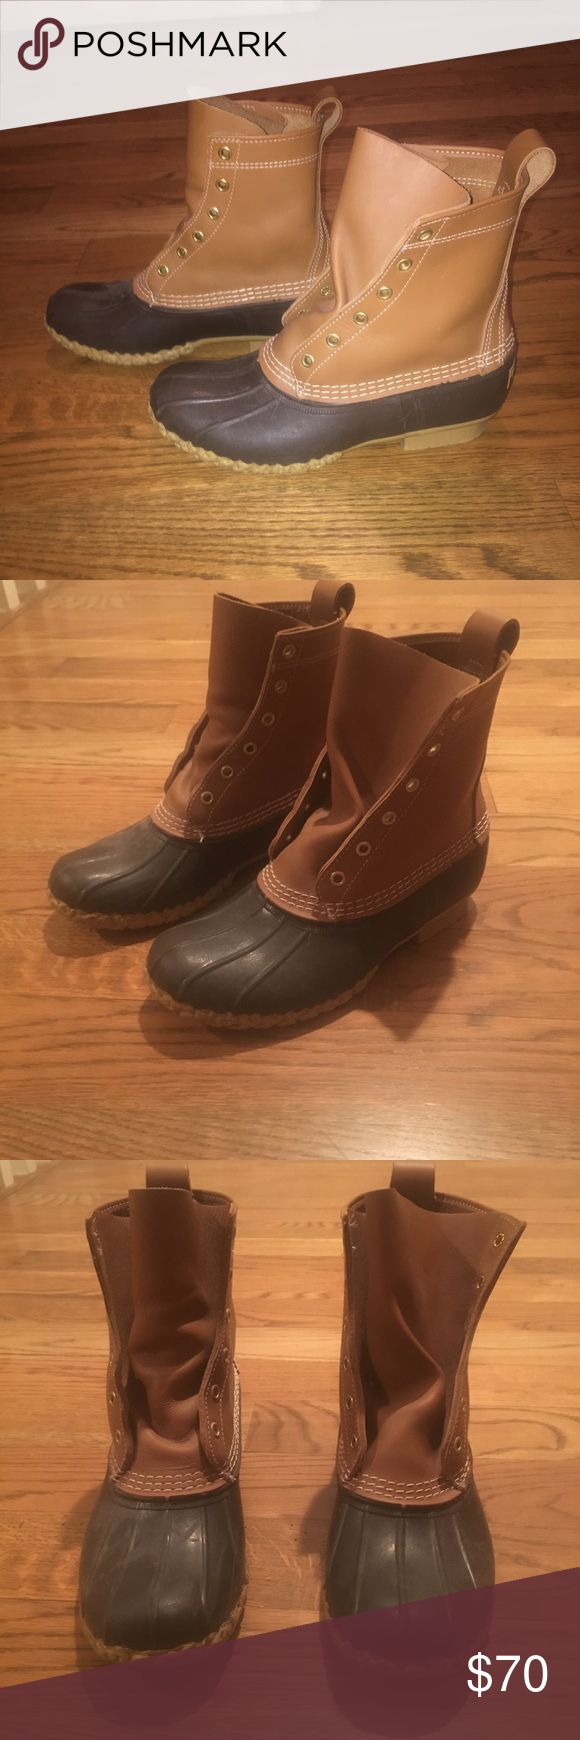 """Women's 8"""" Bean Boot Size 8 Women's 8"""" Bean Boot! -Size 8, however I believe Bean Boots run a little big because I'm a size 8 and they are a bit big... -Only worn once and saw they didn't fit -No laces because I used them for my old pair, but I'm sure it's super easy to find the laces online! -In absolute great condition look brand new. L.L. Bean Shoes Winter & Rain Boots"""